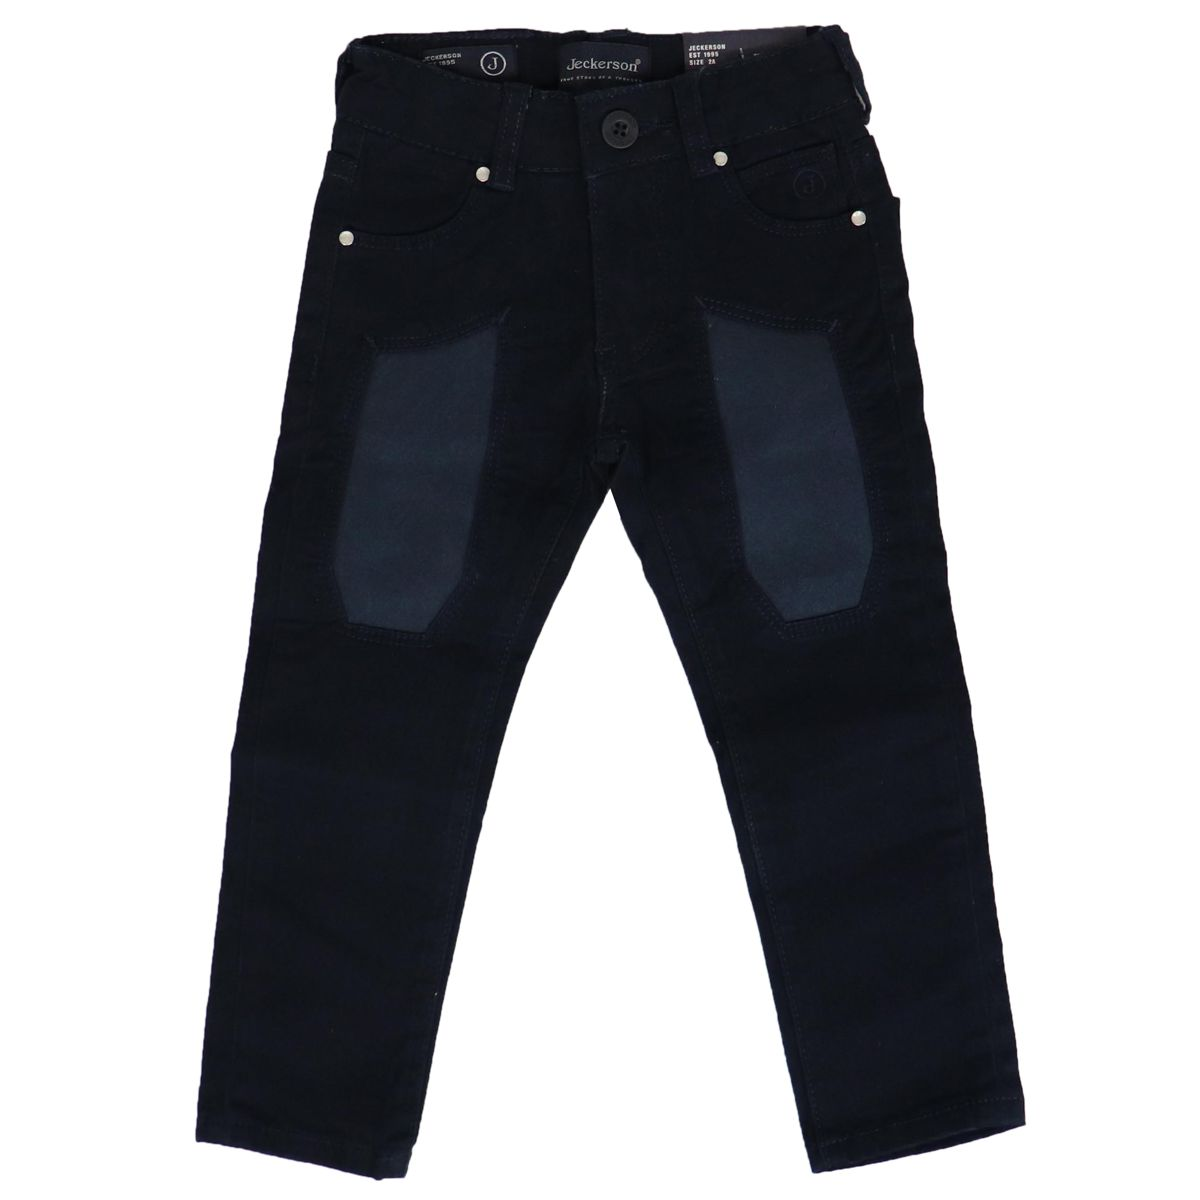 Slim cotton trousers with contrasting patches Blue Jeckerson